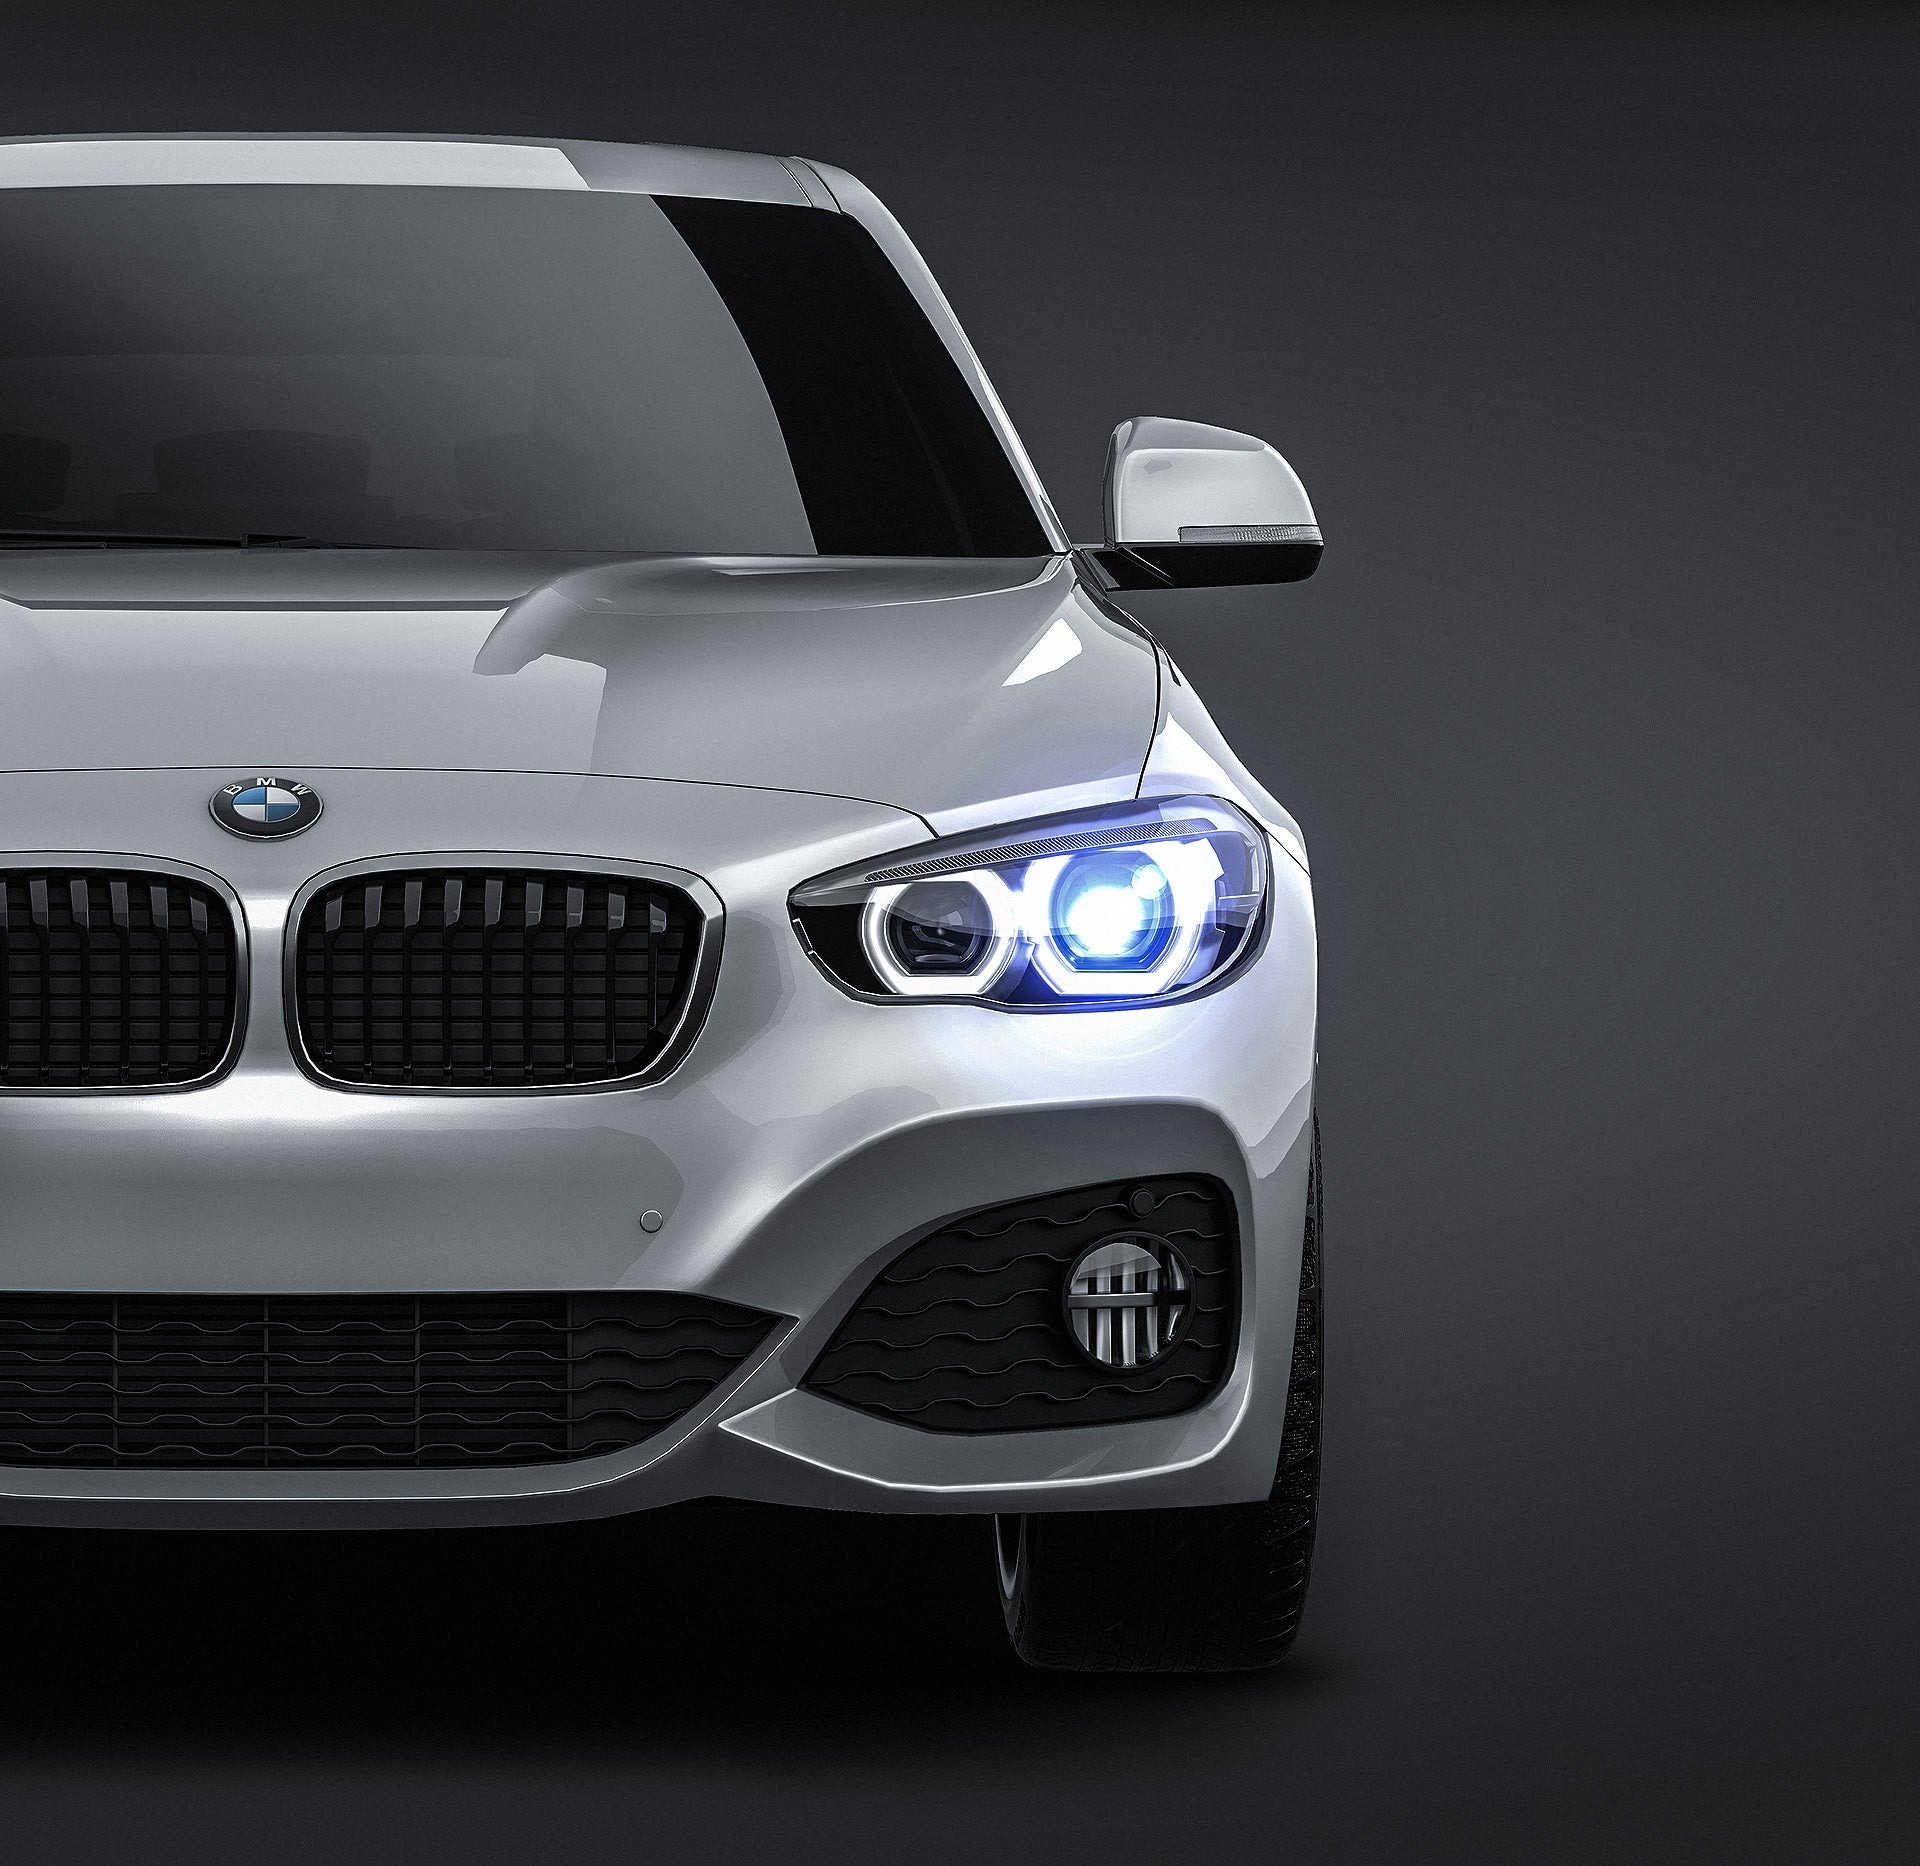 BMW 1 Series F20 5-door 2016 - all sides Car Mockup Template.psd